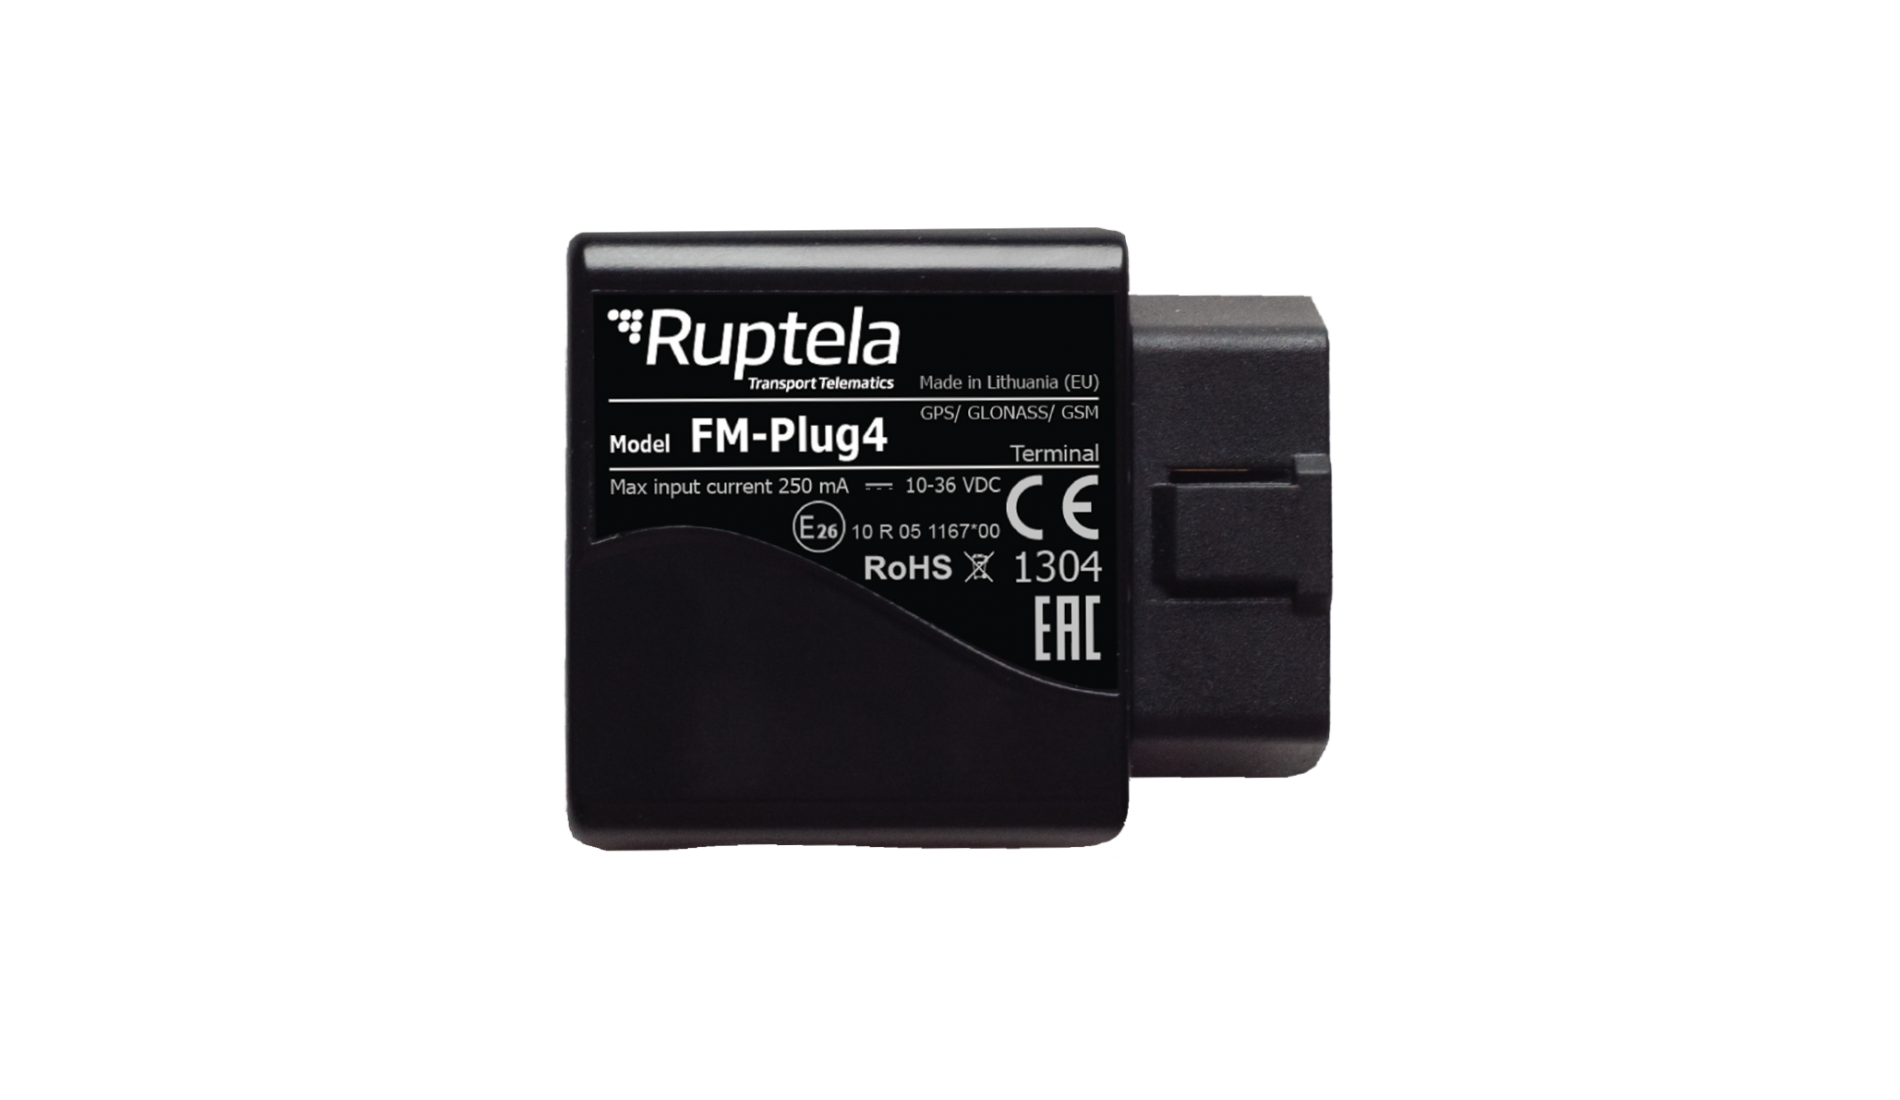 FM-Plug4 is a Plug & Play type GPS tracking device - Ruptela